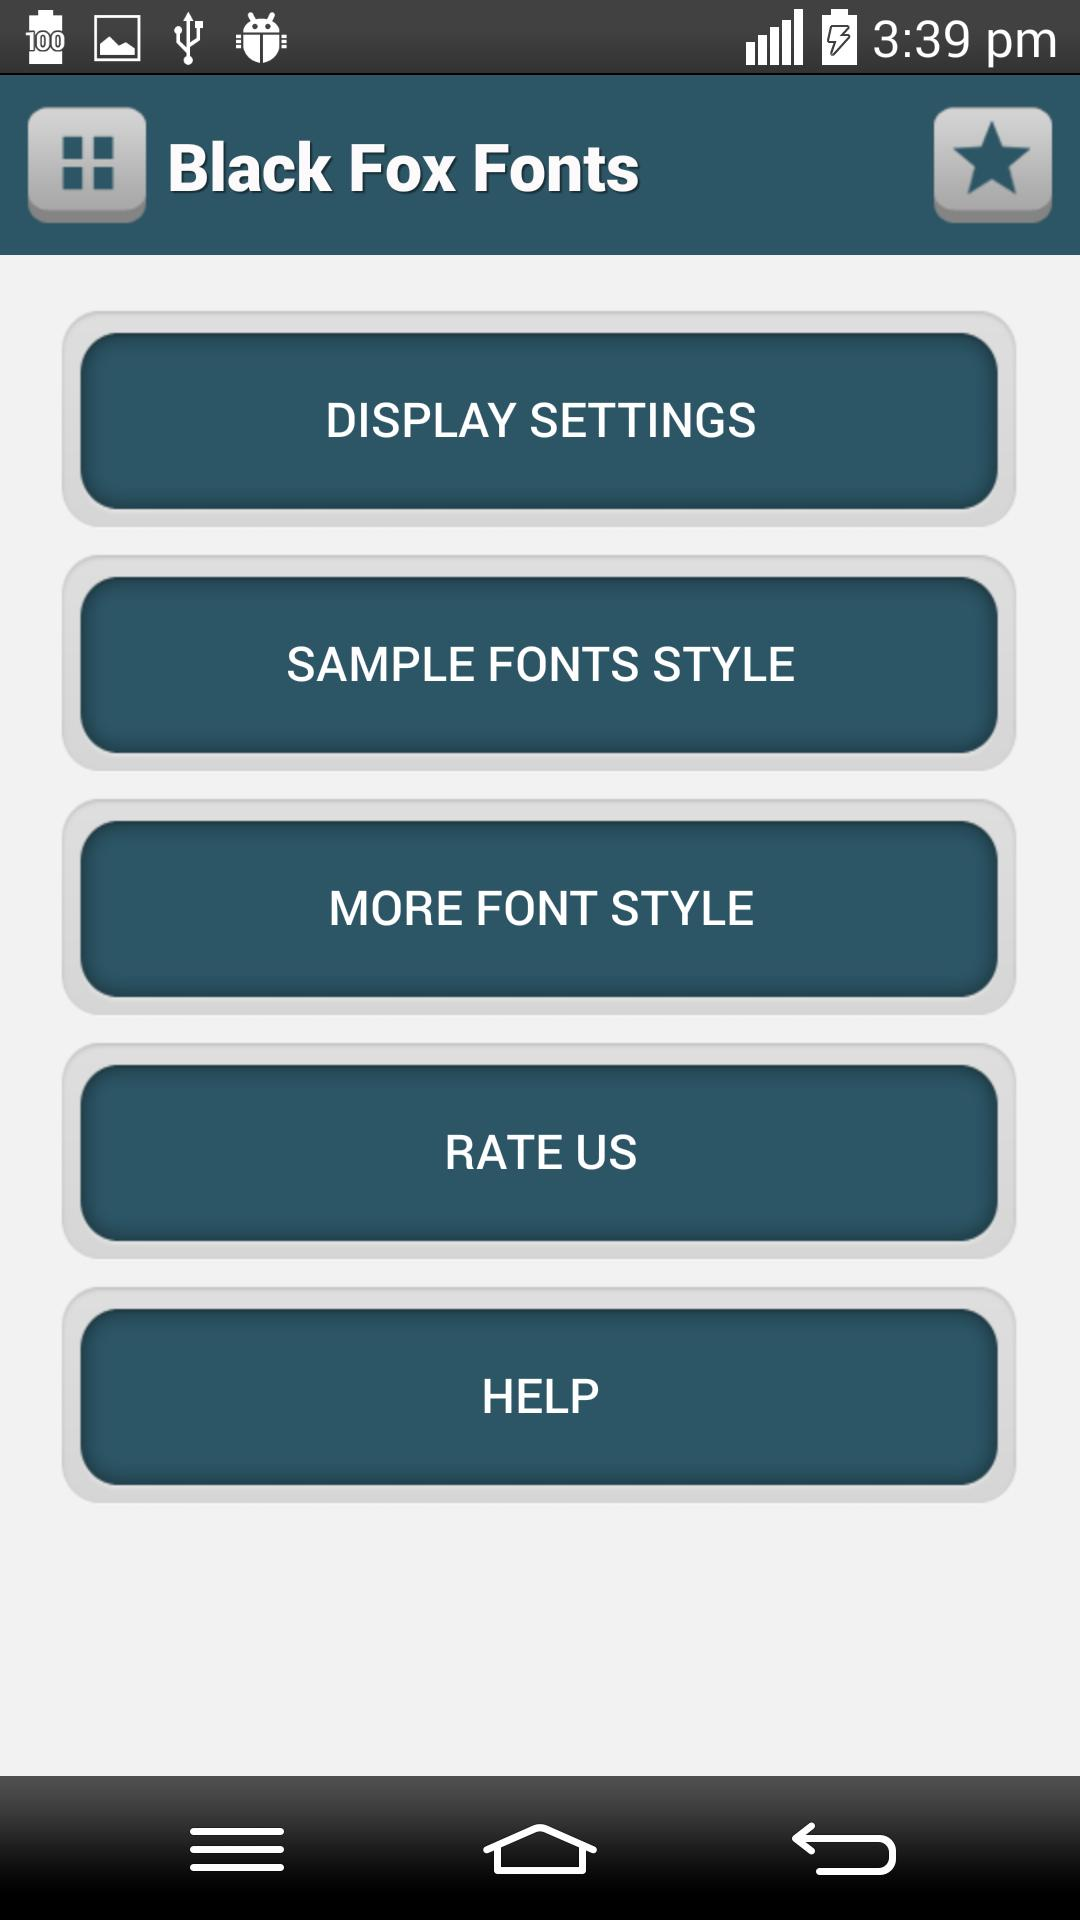 Black Fox Fonts for Android - APK Download